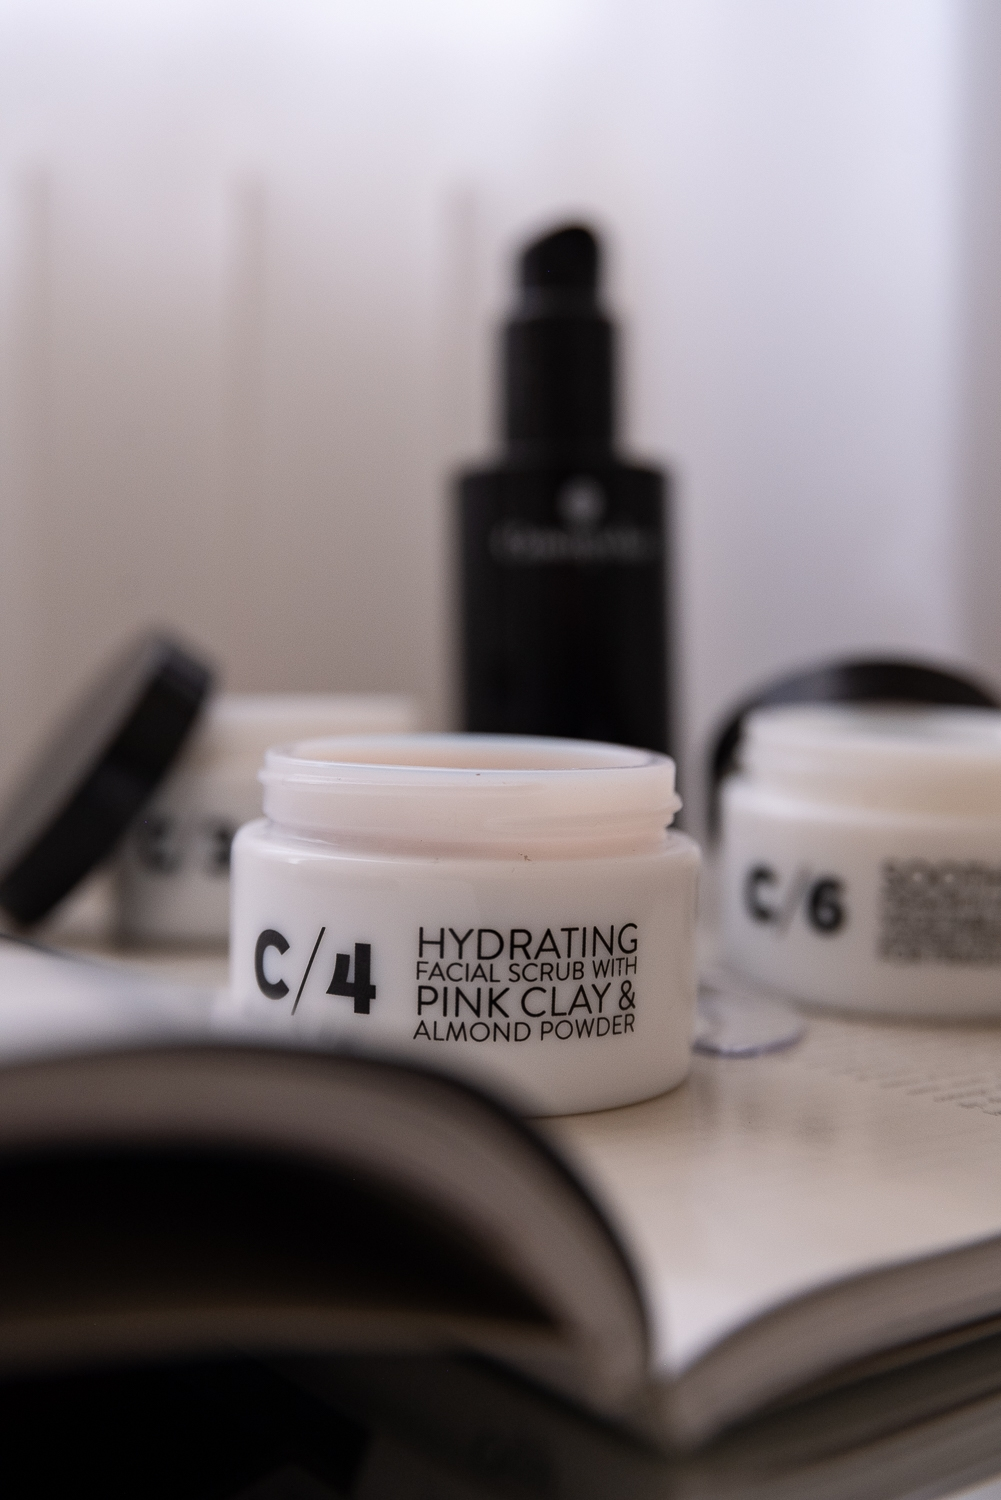 C/4-Hydrating-Facial-Scrub-with-Pink-Clay-Almond-Powder-Peeling